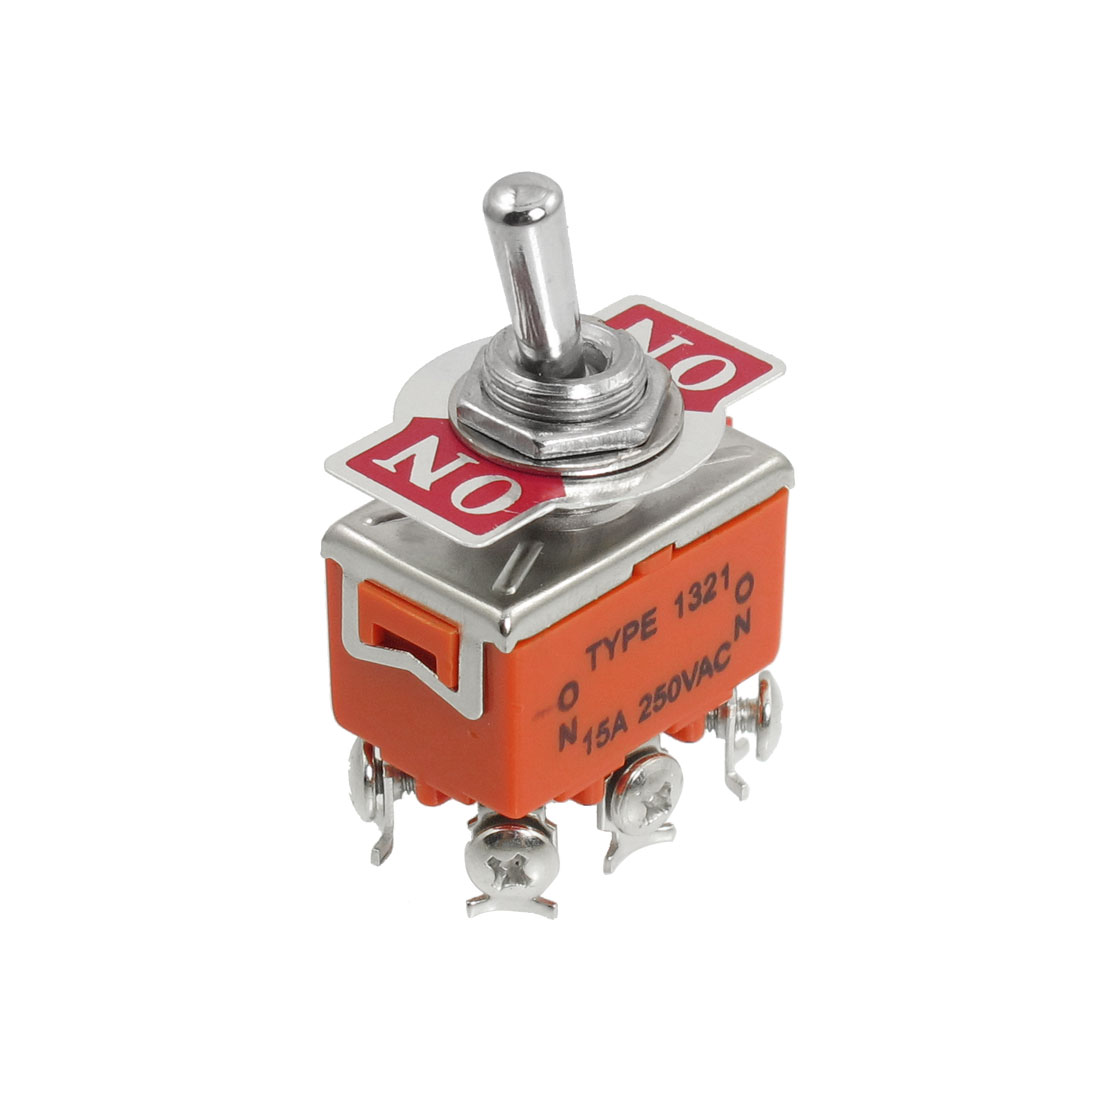 DPDT On/On 2 Position Latching Toggle Switch AC 250V 15A